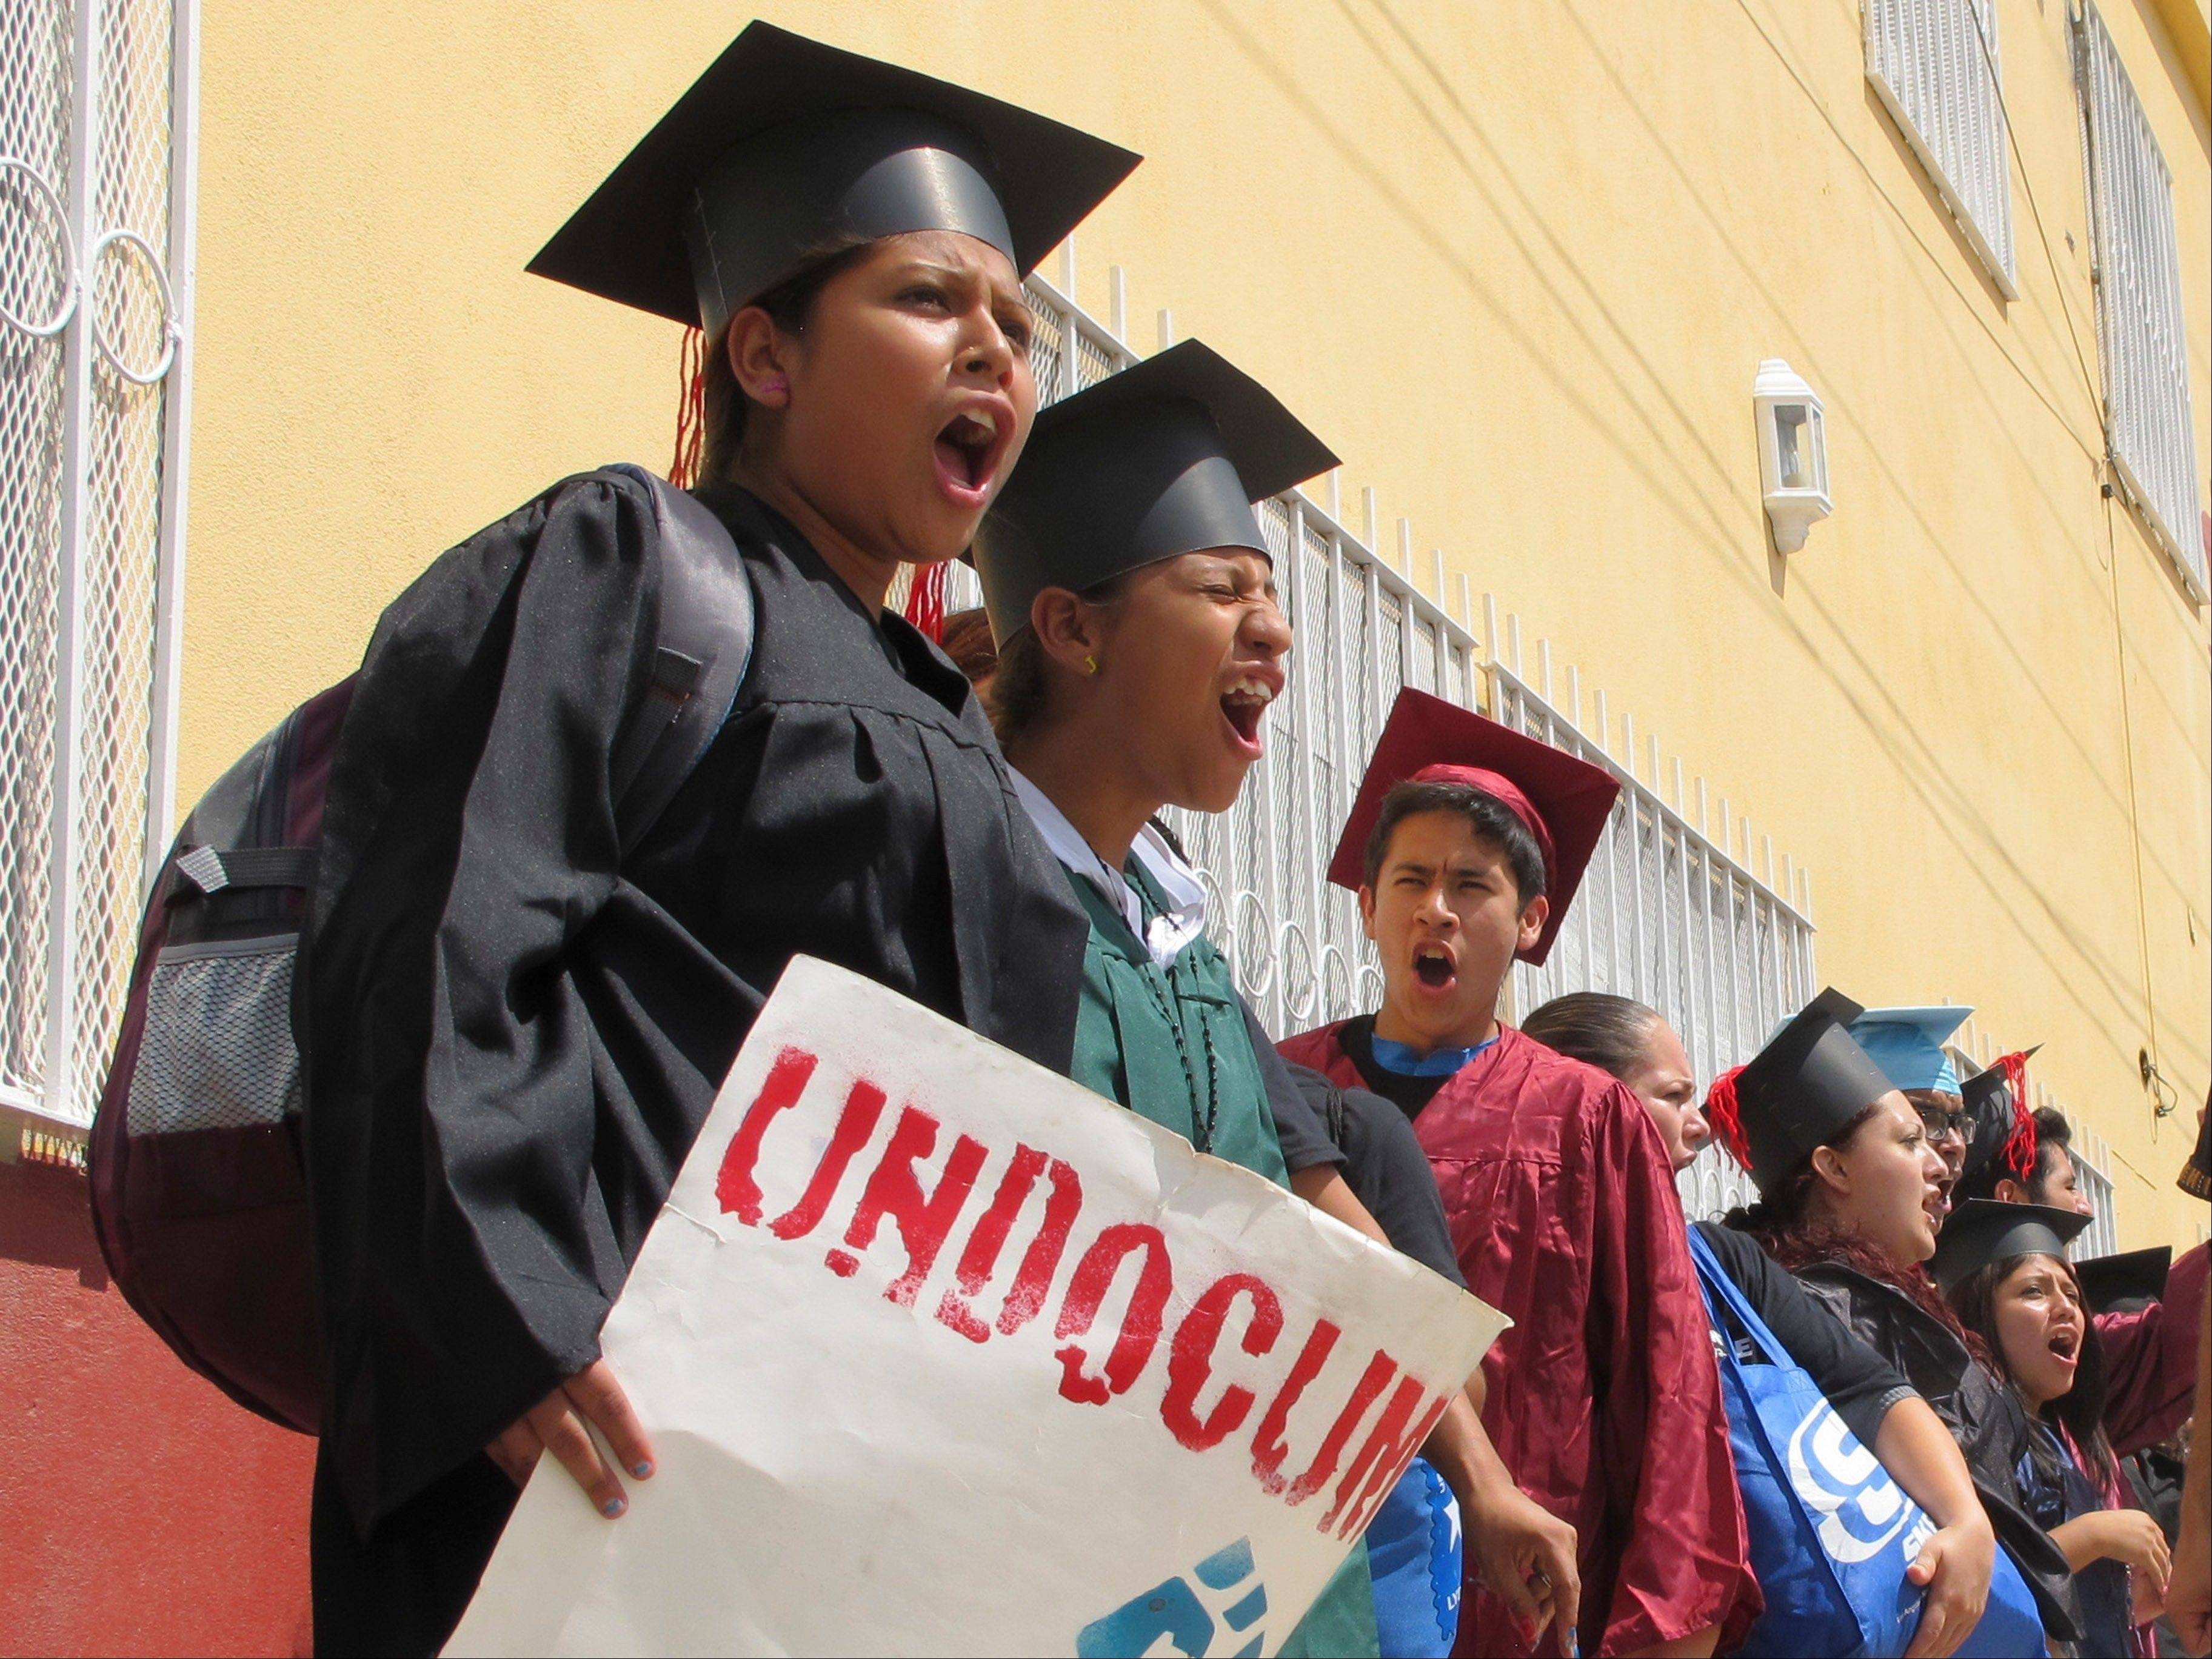 Wearing a colorful array of graduation-style caps and gowns, 34 young people who spent long stretches of their childhoods in U.S. cities like Phoenix and Boston chanted �undocumented and unafraid� as they crossed the Rio Grande into Texas.